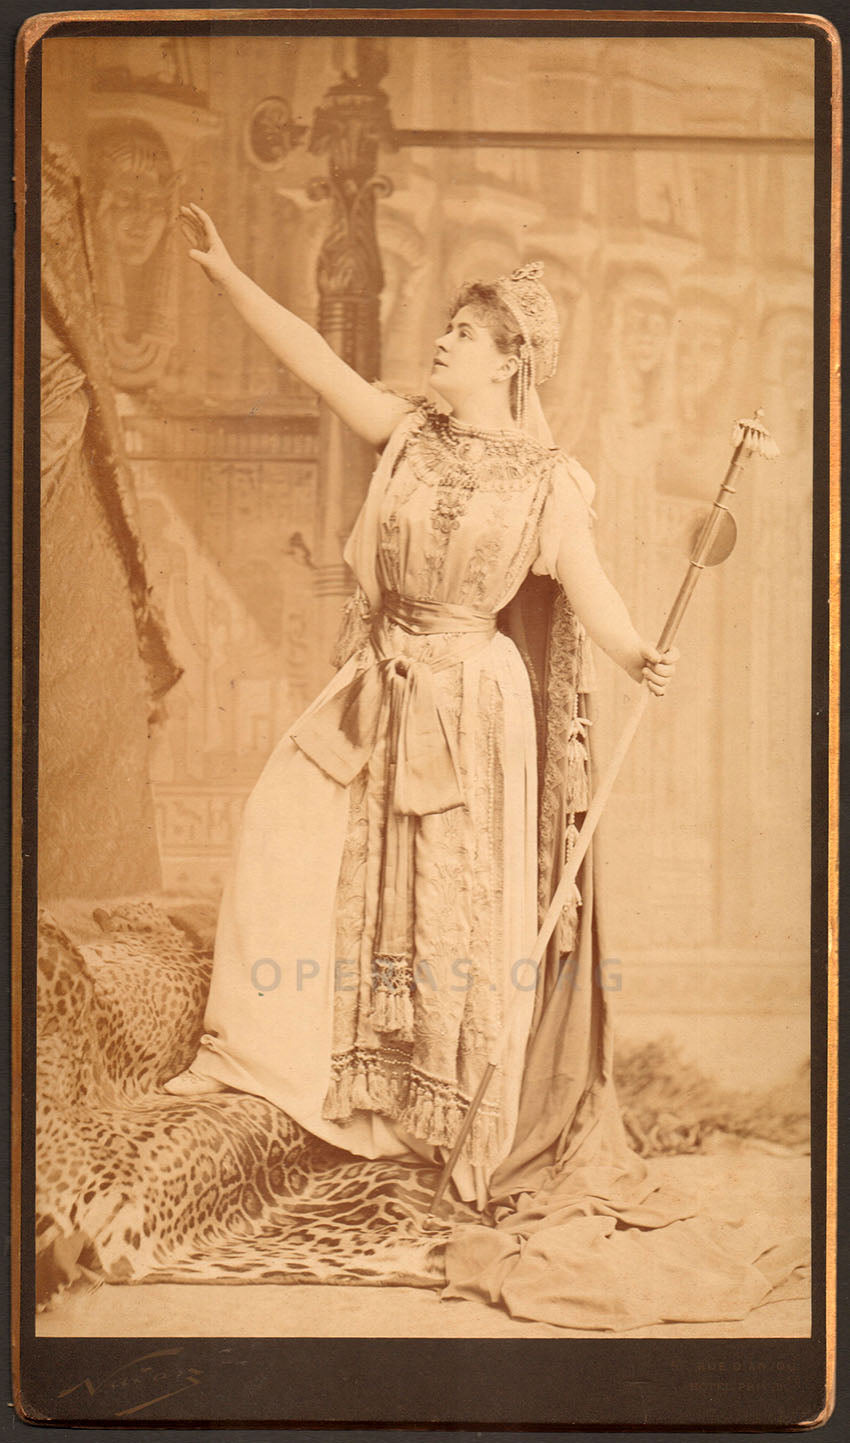 Marie Delna as Didon in Les Troyens - Debut at age 17